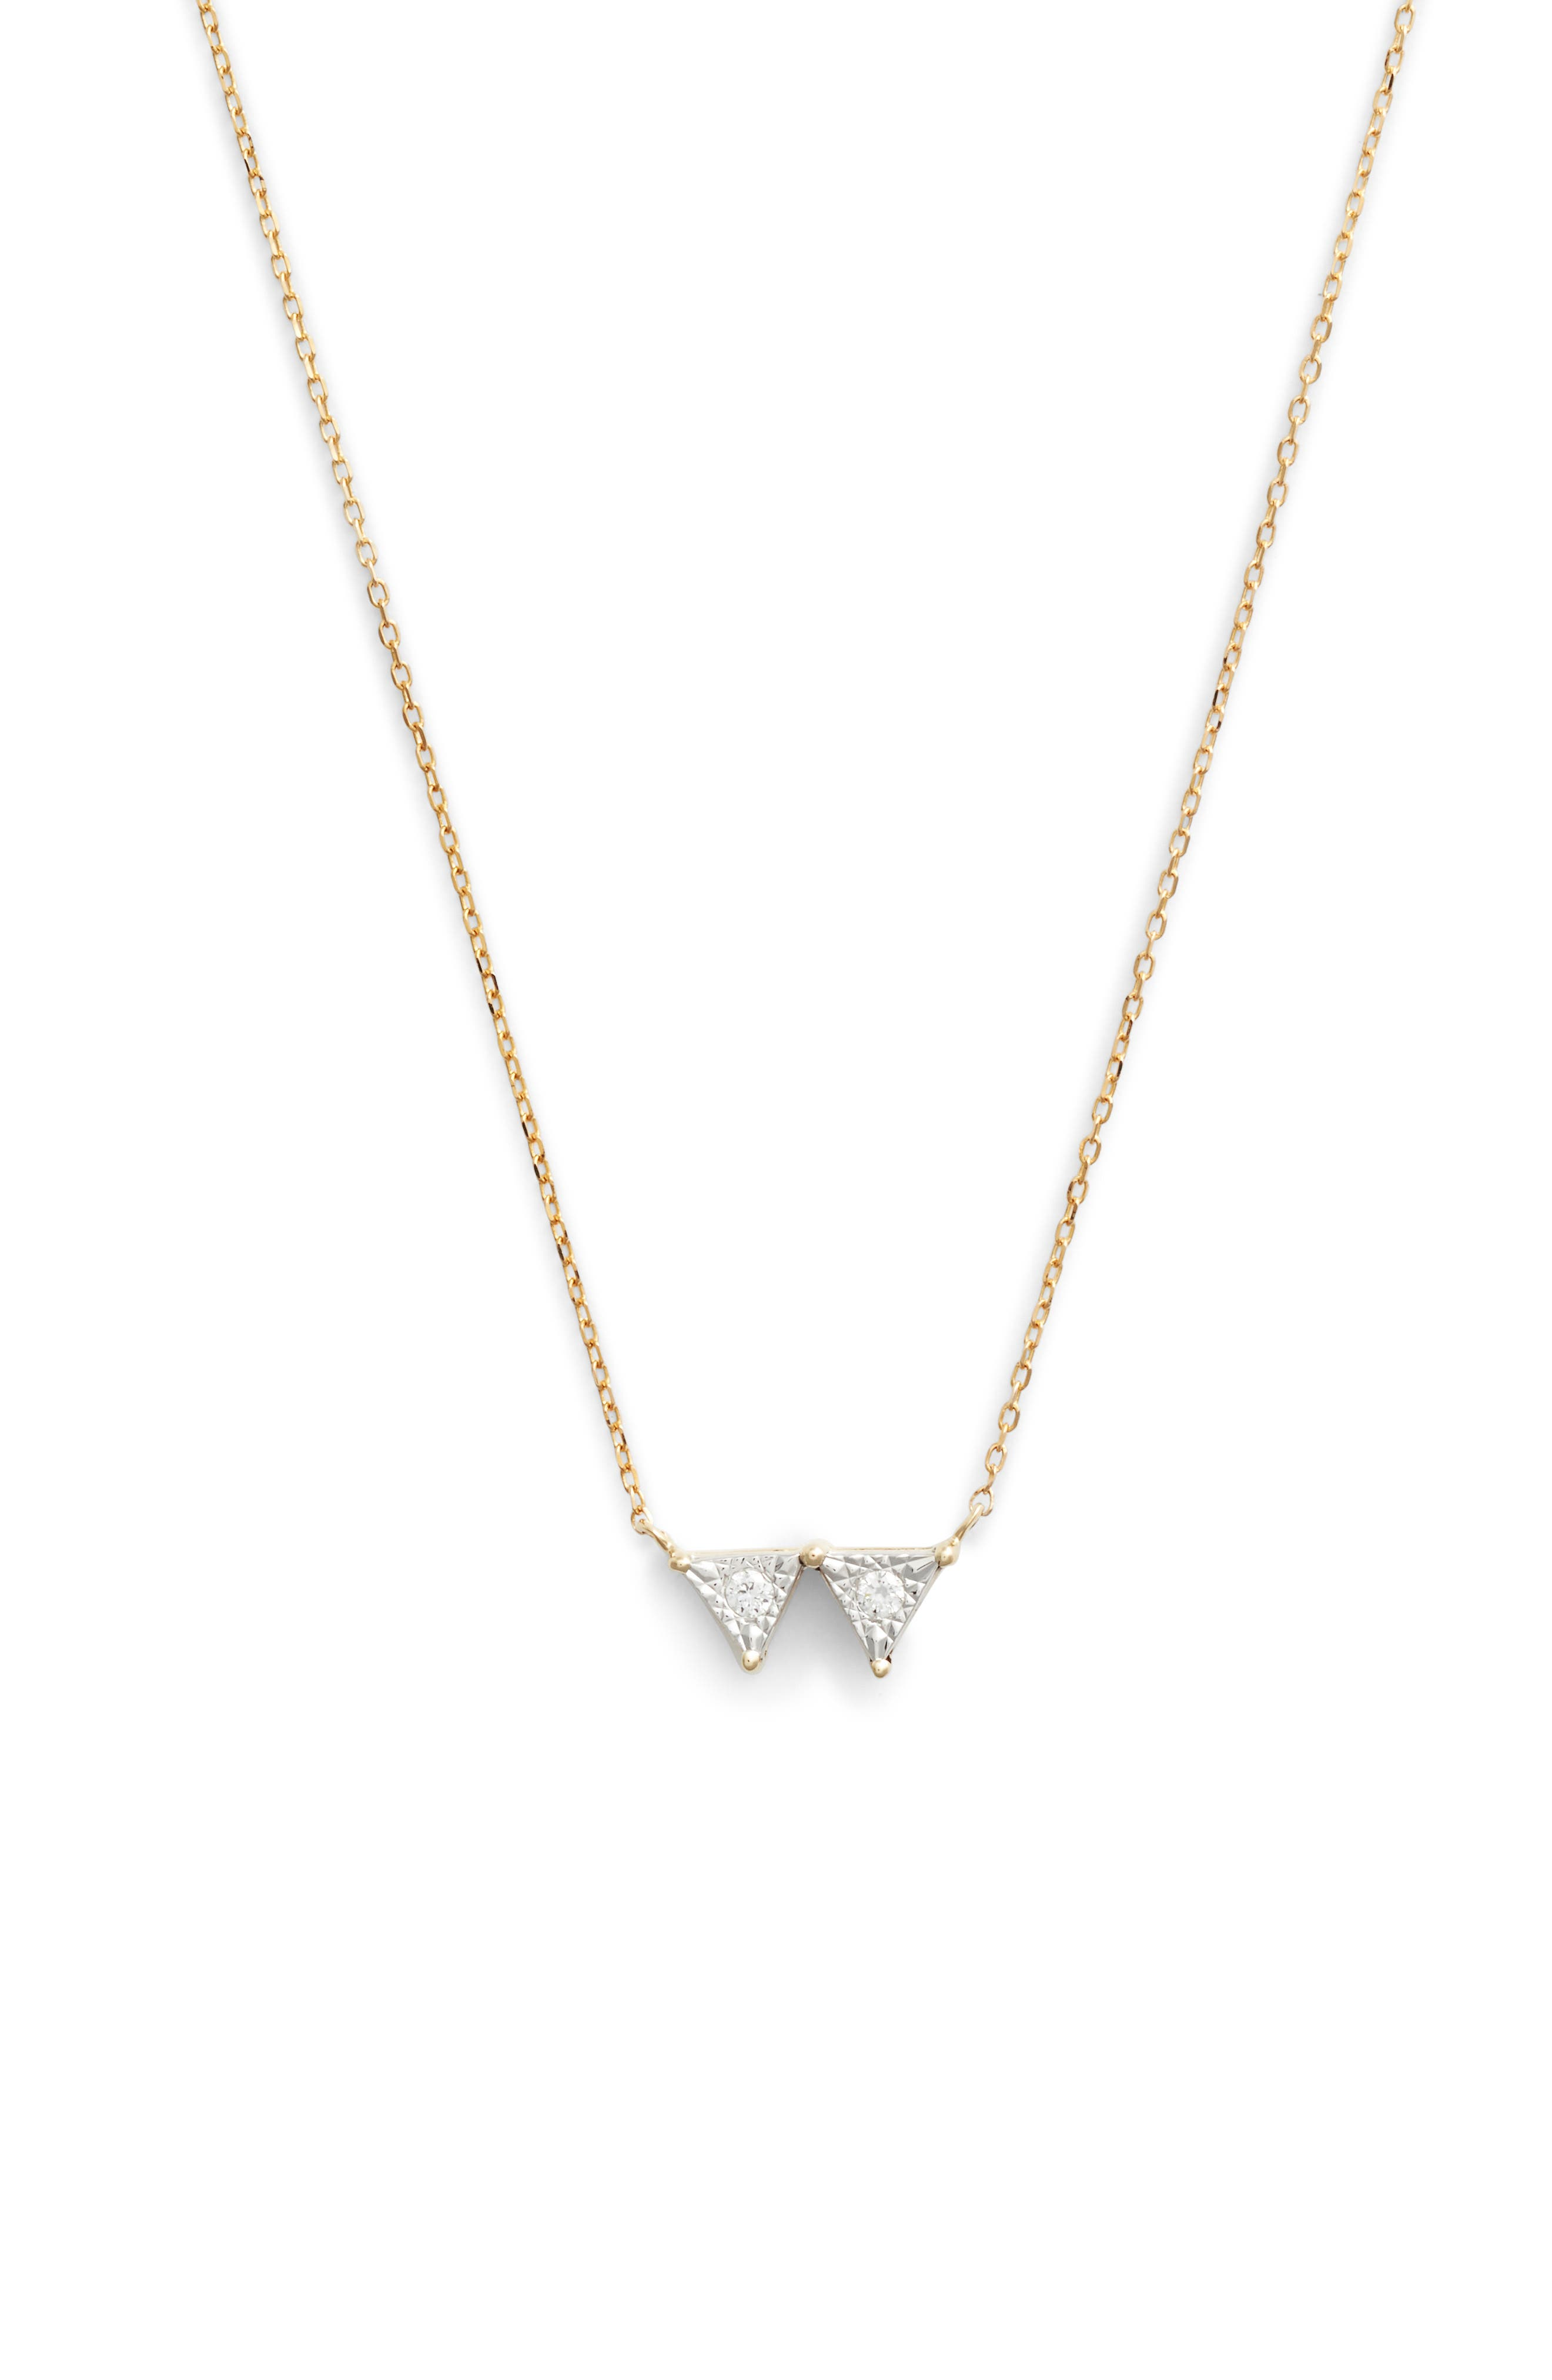 Emily Sarah Double Triangle Diamond Necklace,                             Main thumbnail 1, color,                             YELLOW GOLD